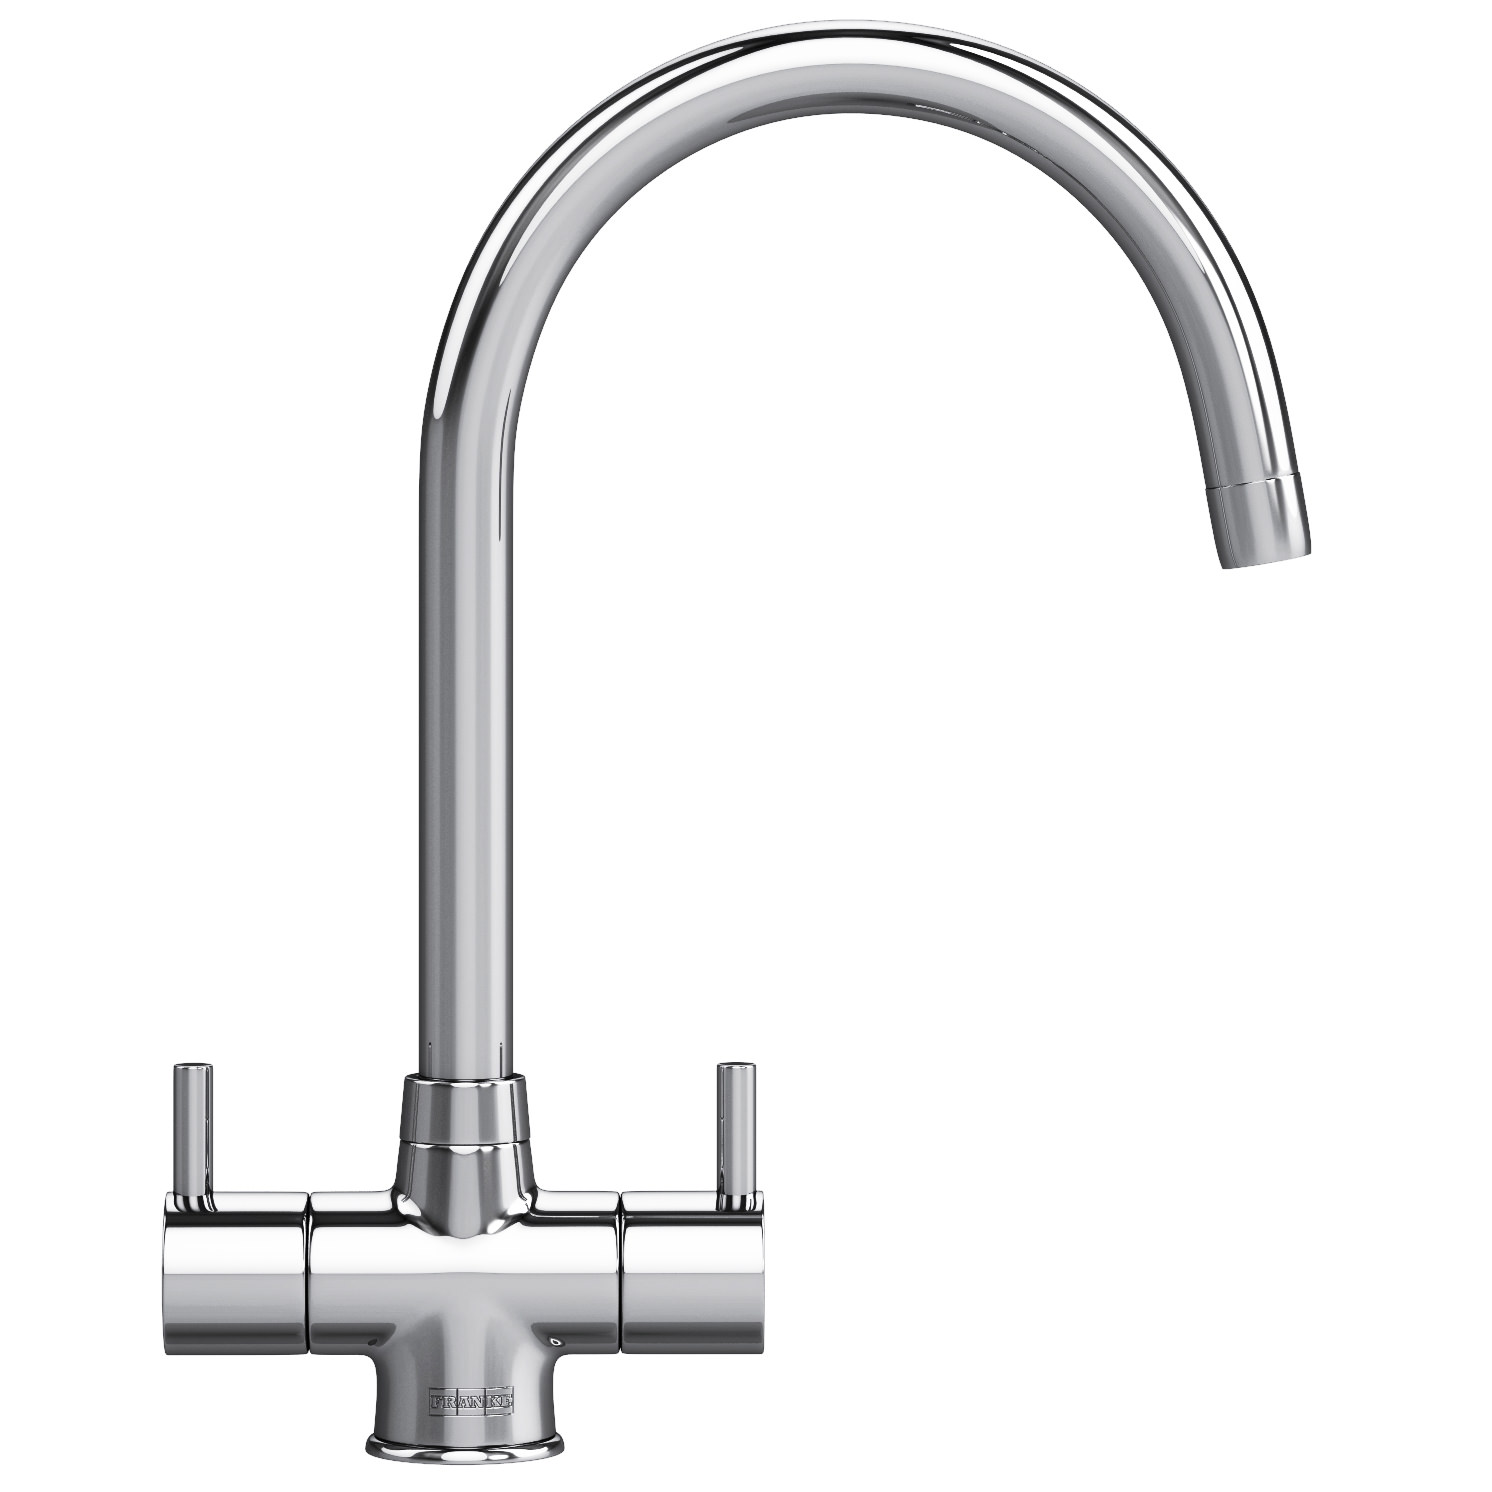 Franke Kitchen Mixer : ... taps kitchen mixer taps franke athena kitchen sink mixer tap chrome